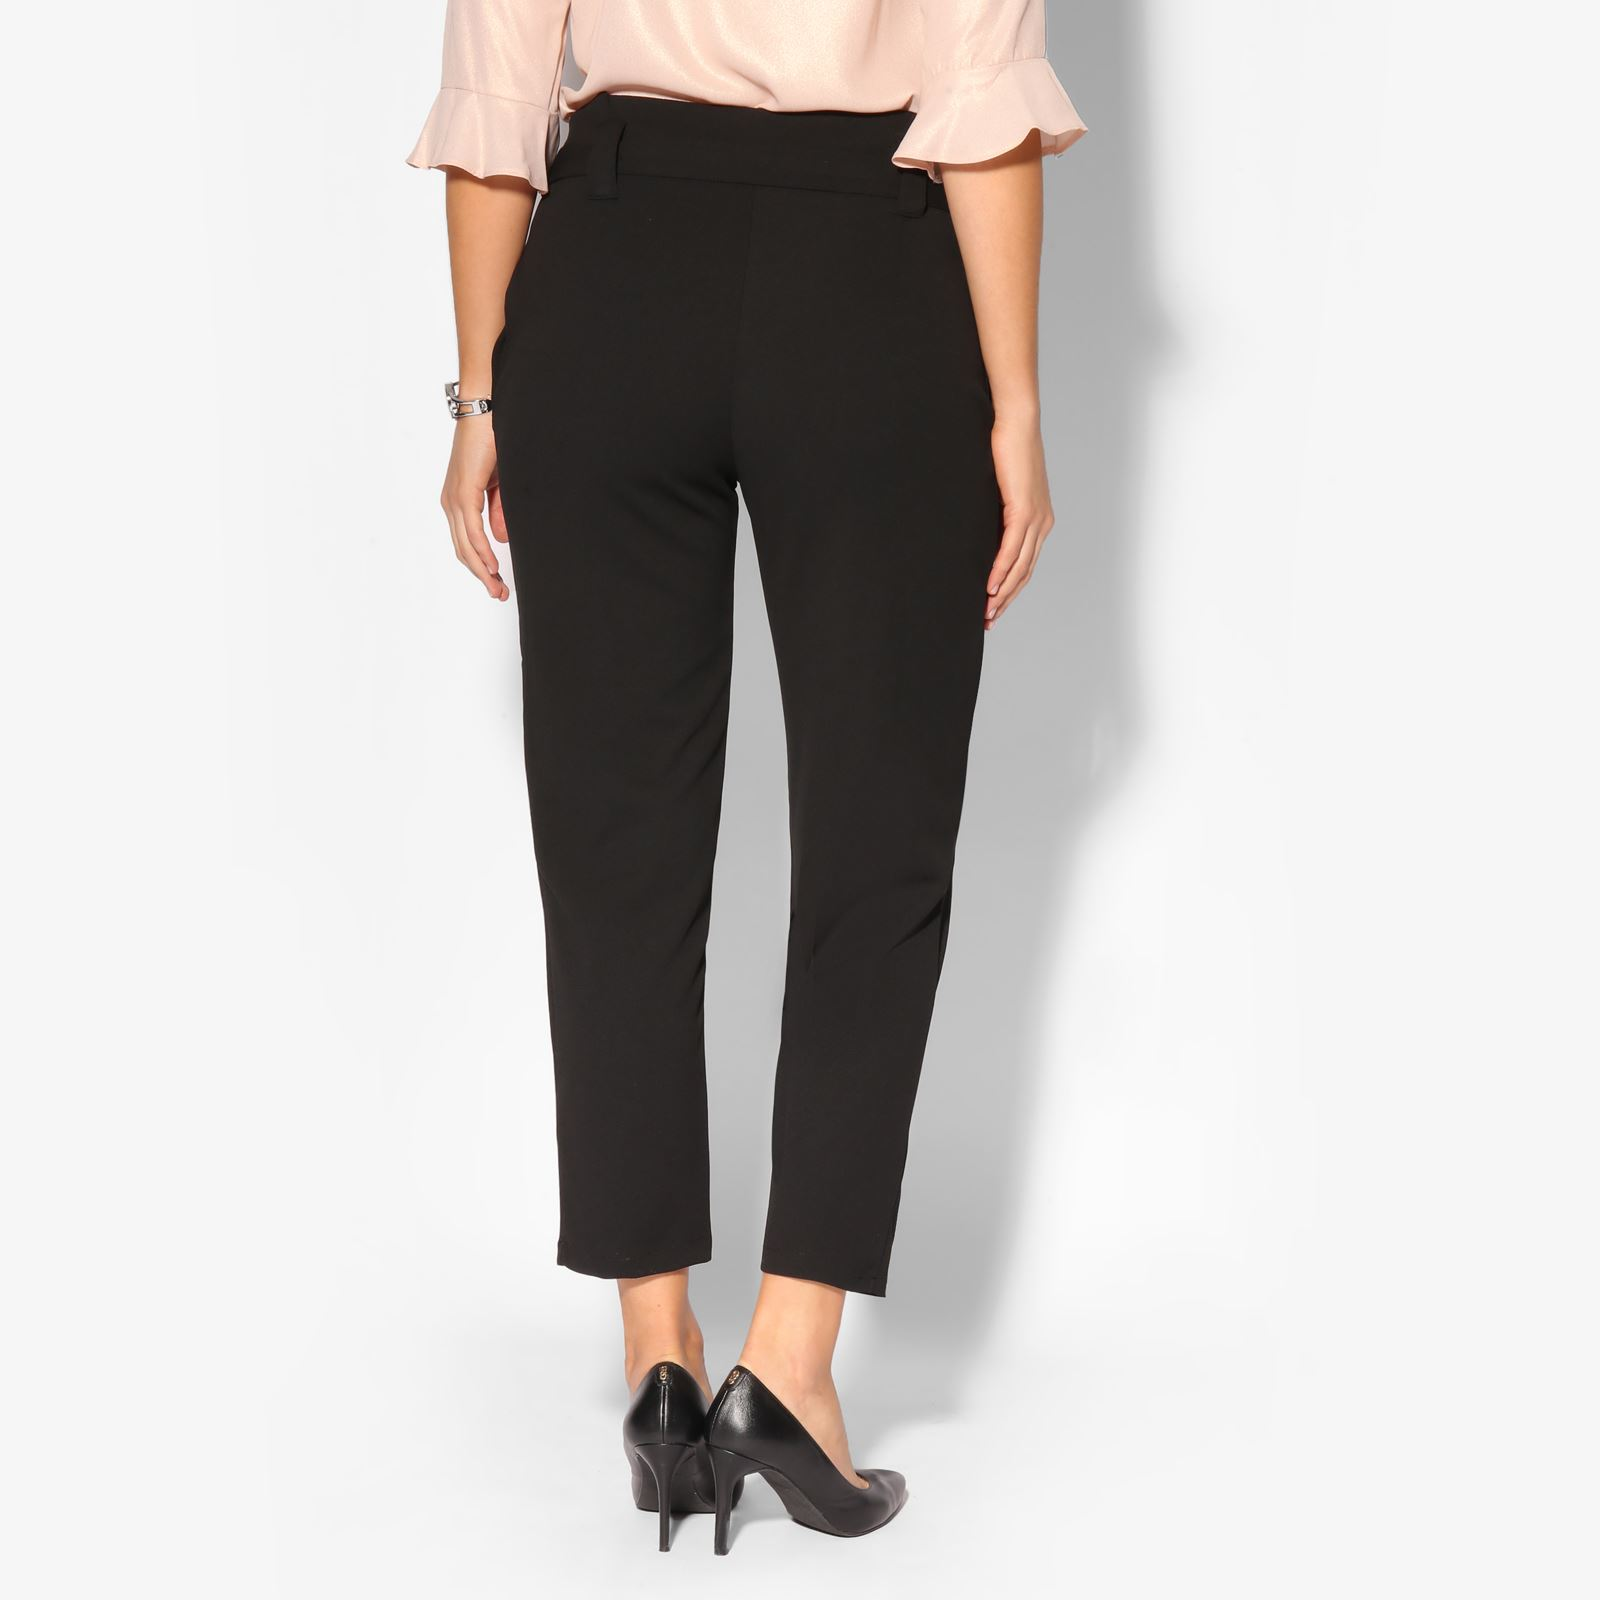 Women-High-Waist-Tapered-Pencil-Paperbag-Ladies-Trousers-Cigarette-Pants-Size thumbnail 3